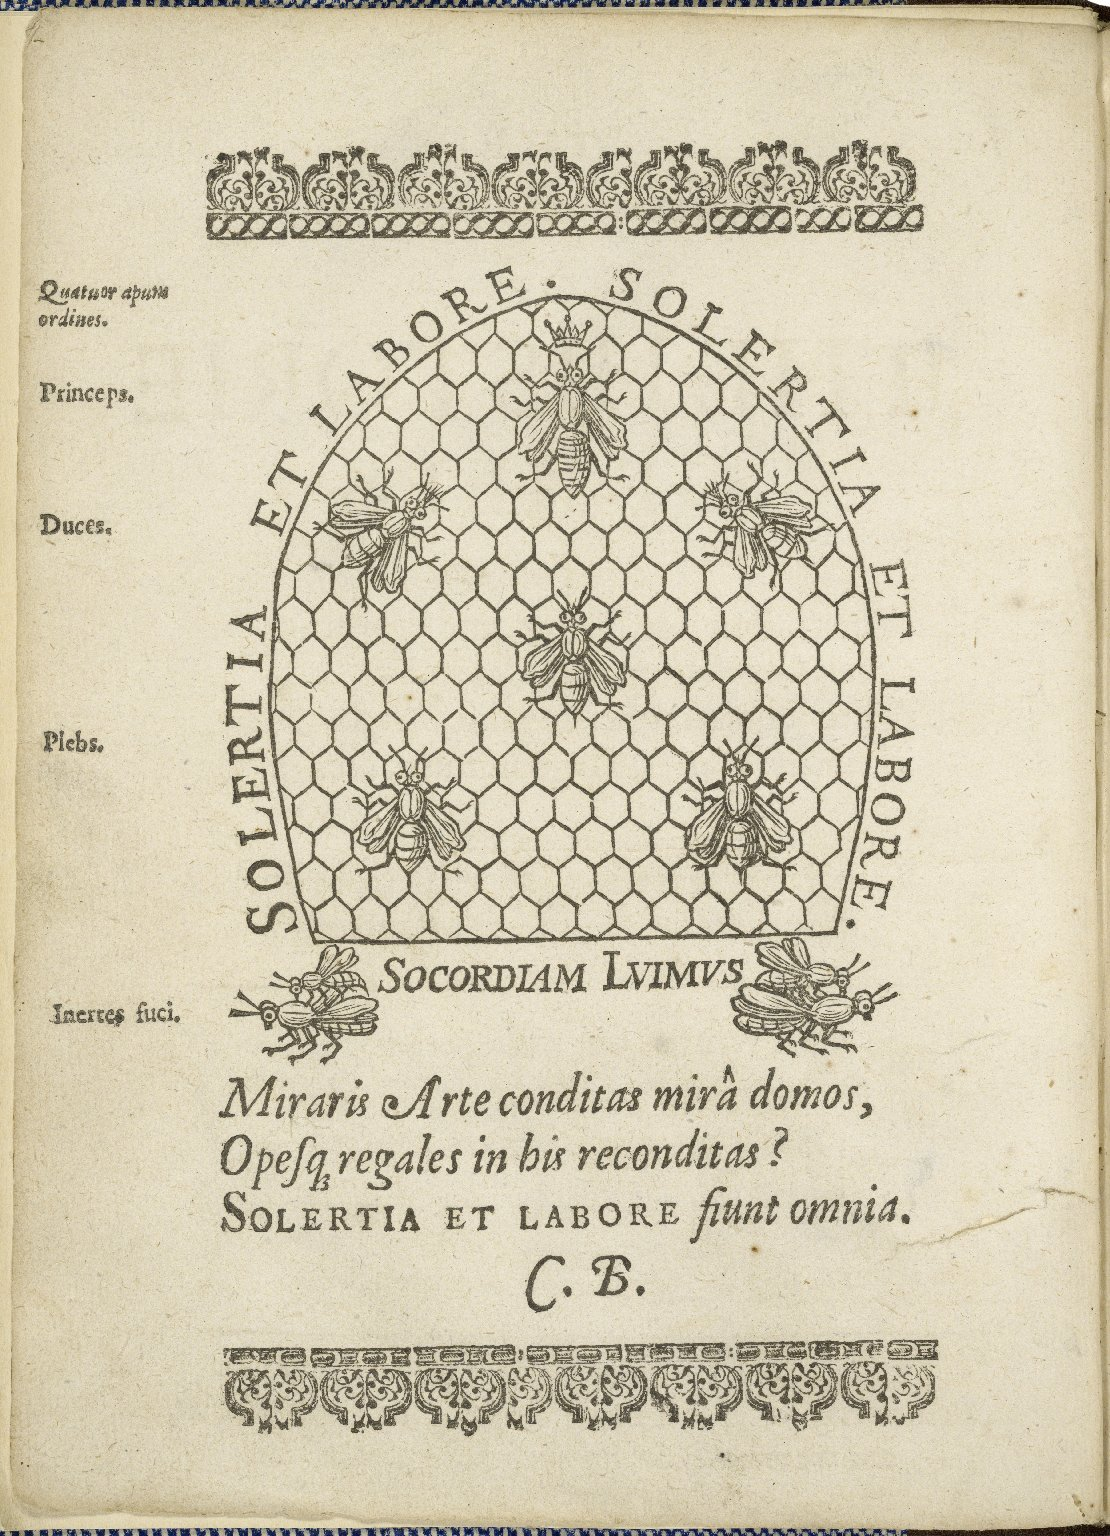 The feminine monarchie: or The historie of bees. Shewing their admirable nature, and properties, their generation, and colonies, their gouernment, loyaltie, art, industrie, enemies, warres, magnanimitie, &c. Together with the right ordering of them from t